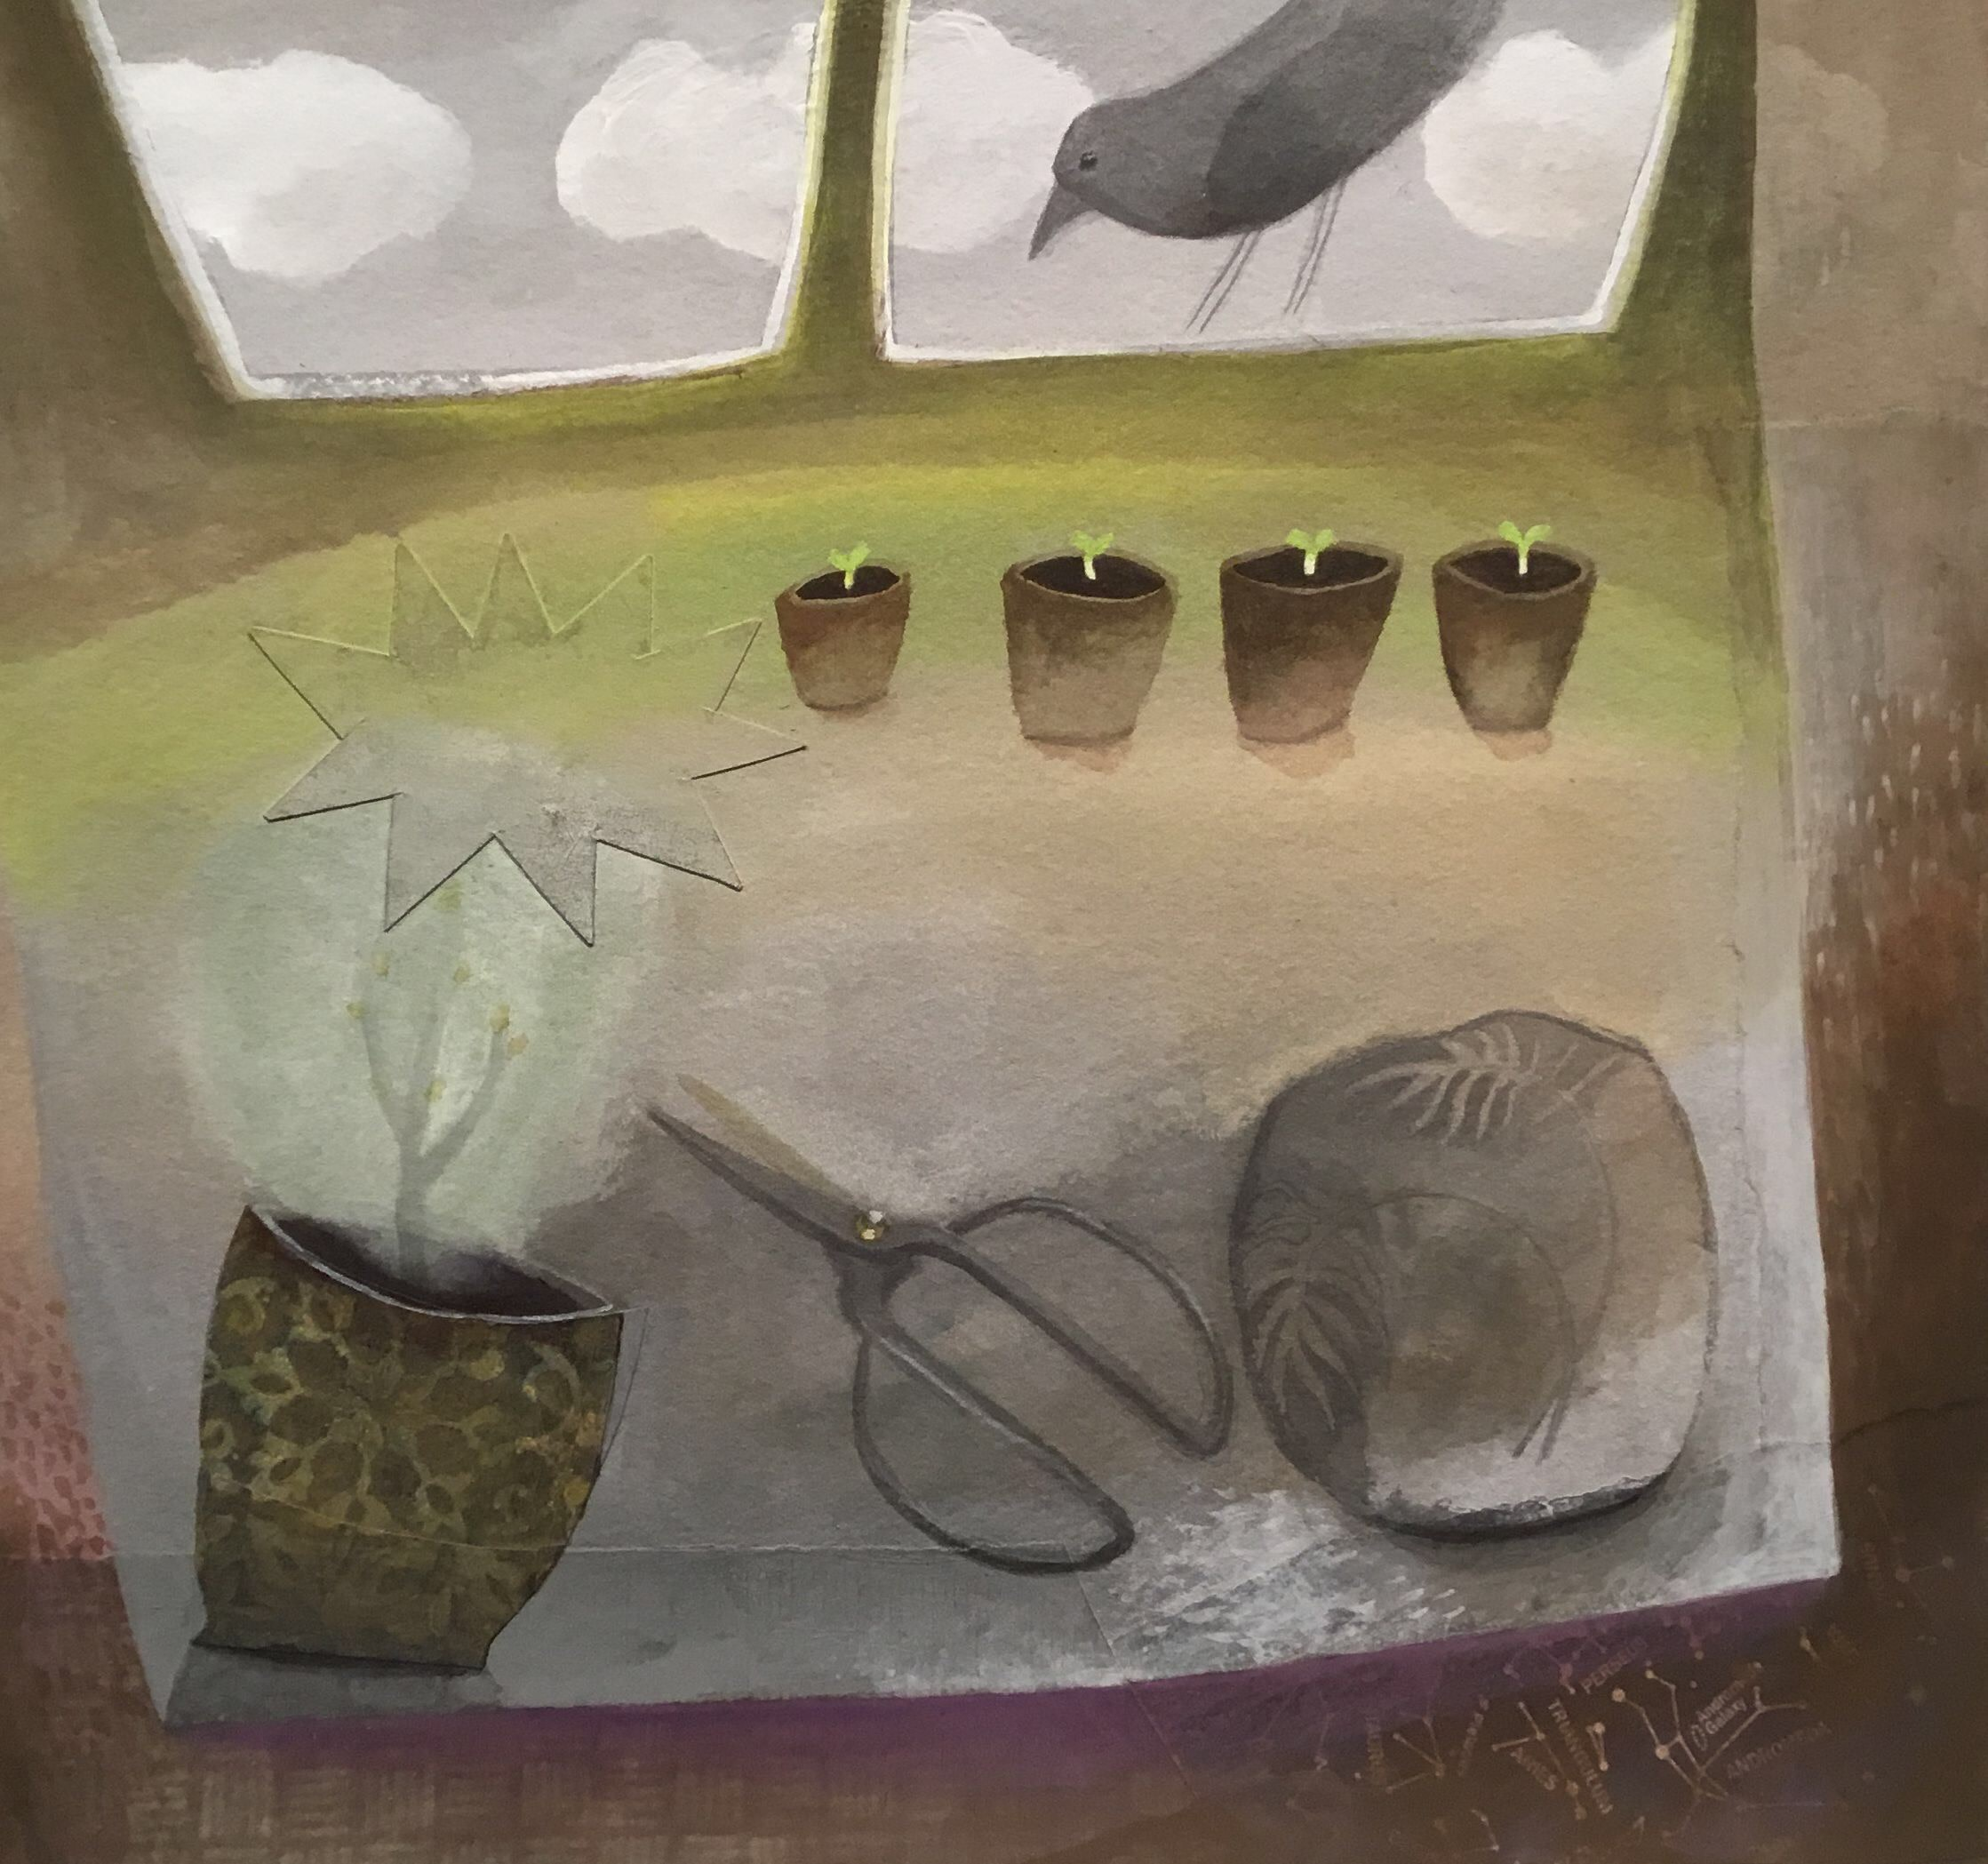 """<span class=""""link fancybox-details-link""""><a href=""""/artists/146-gertie-young/works/12699-gertie-young-crow-checks-on-the-seedlings/"""">View Detail Page</a></span><div class=""""artist""""><span class=""""artist""""><strong>Gertie Young</strong></span></div><div class=""""title""""><em>Crow Checks on the Seedlings</em></div><div class=""""medium"""">watercolour & gouache on card</div><div class=""""dimensions"""">Artwork: 30 x 29cm</div><div class=""""price"""">£290.00</div>"""